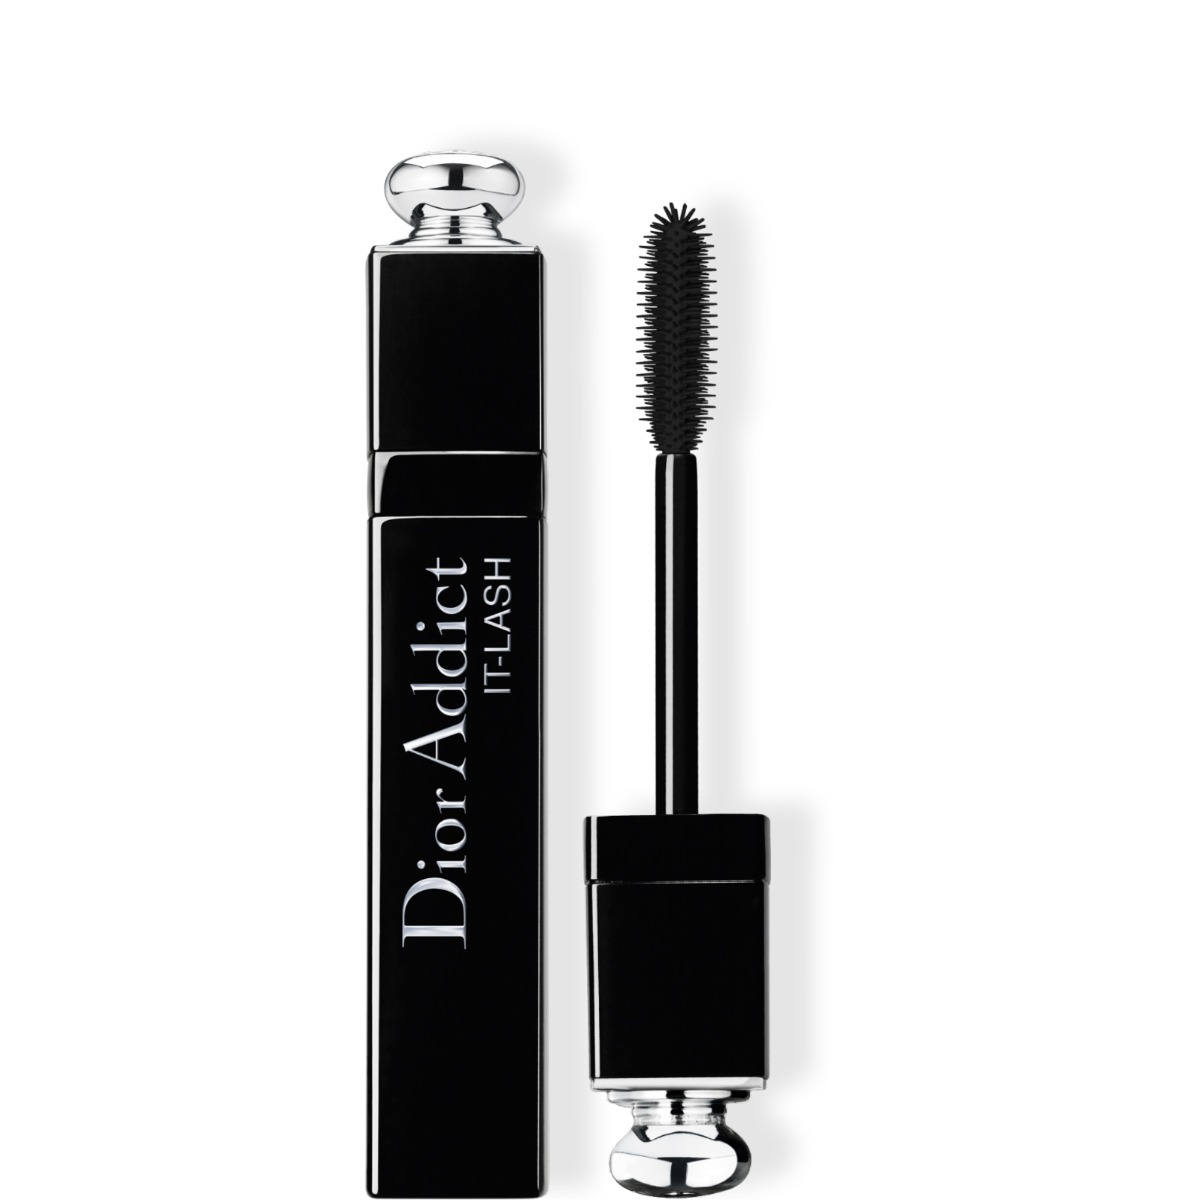 Afbeelding van DIOR Addict IT Lash 092 Black